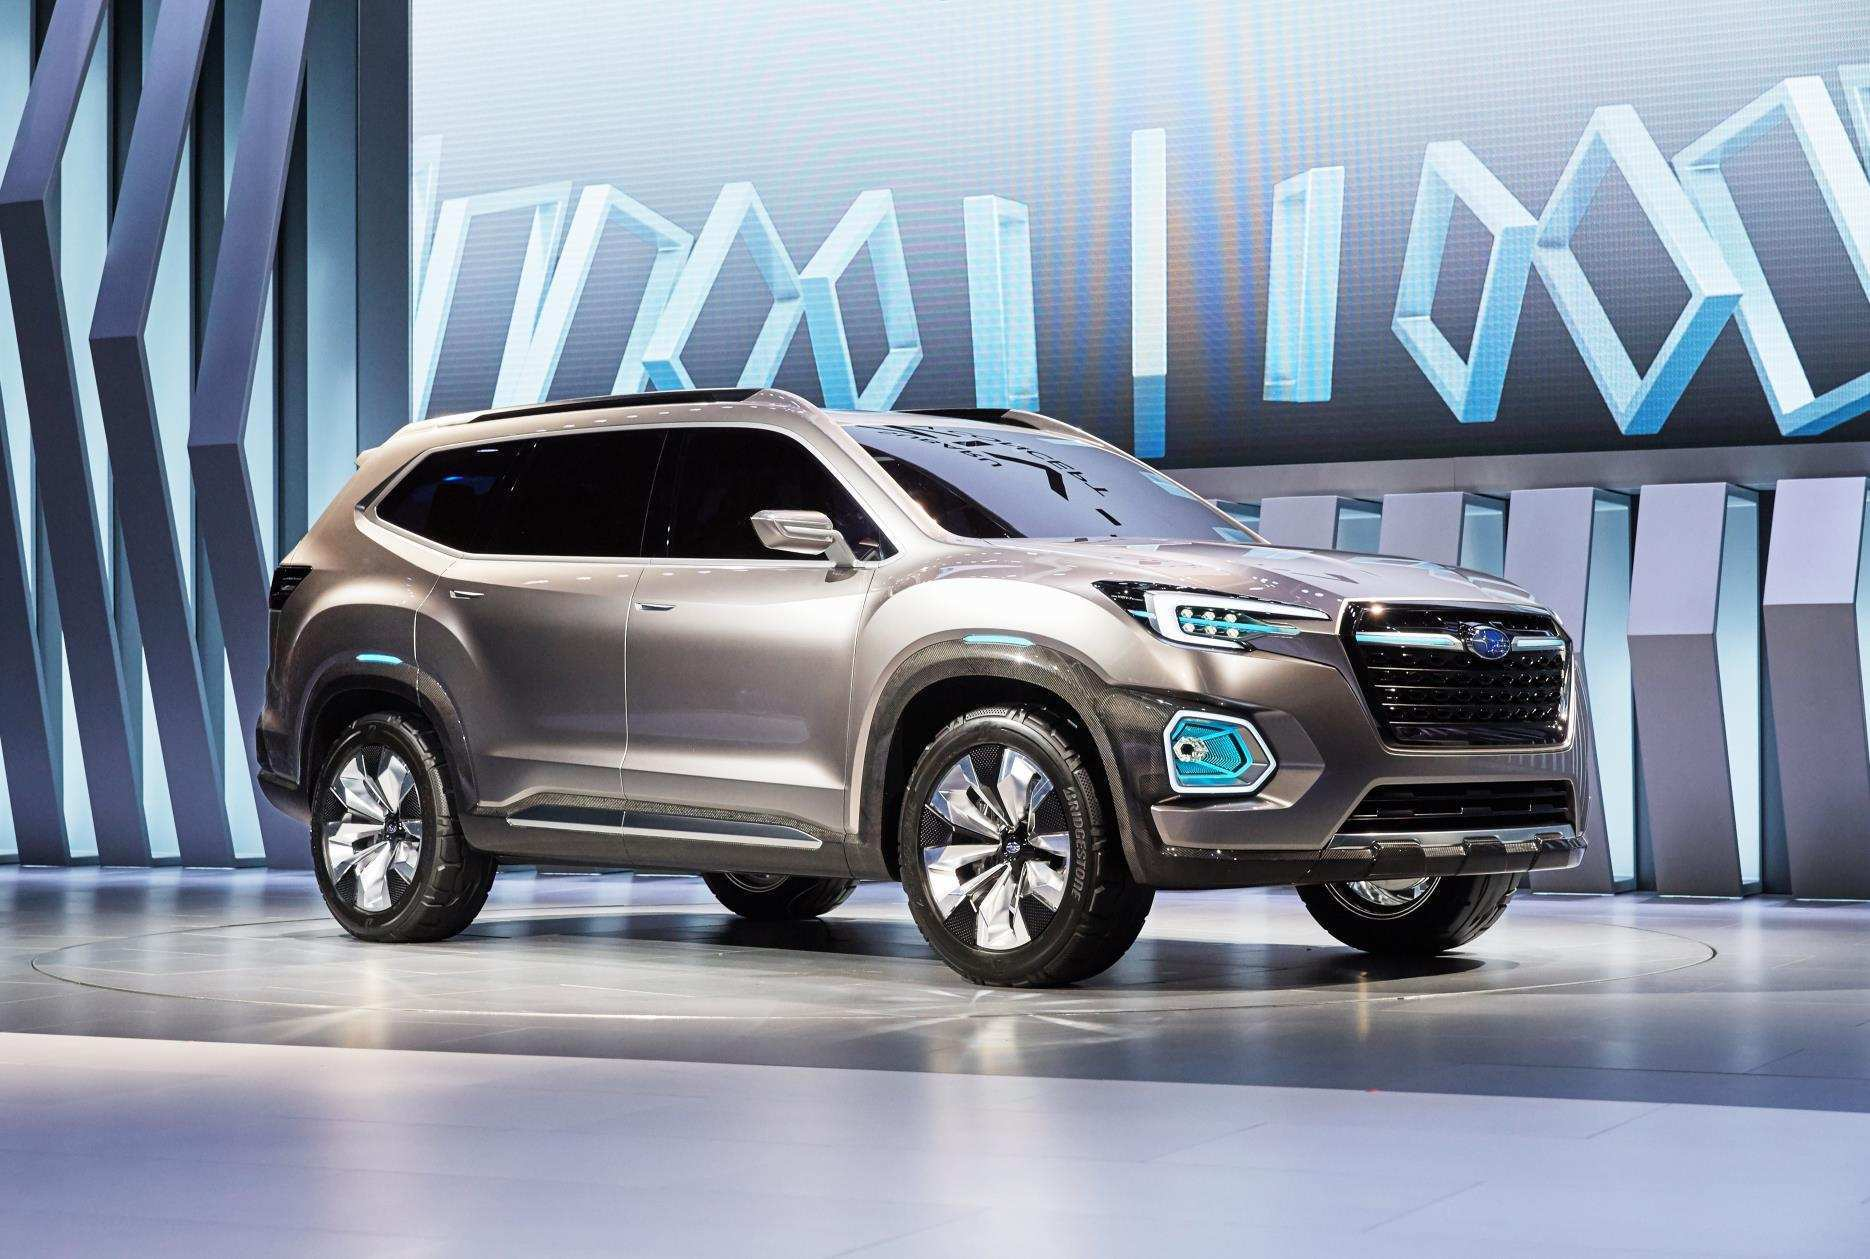 70 New Tribeca Subaru 2019 Review And Release Date